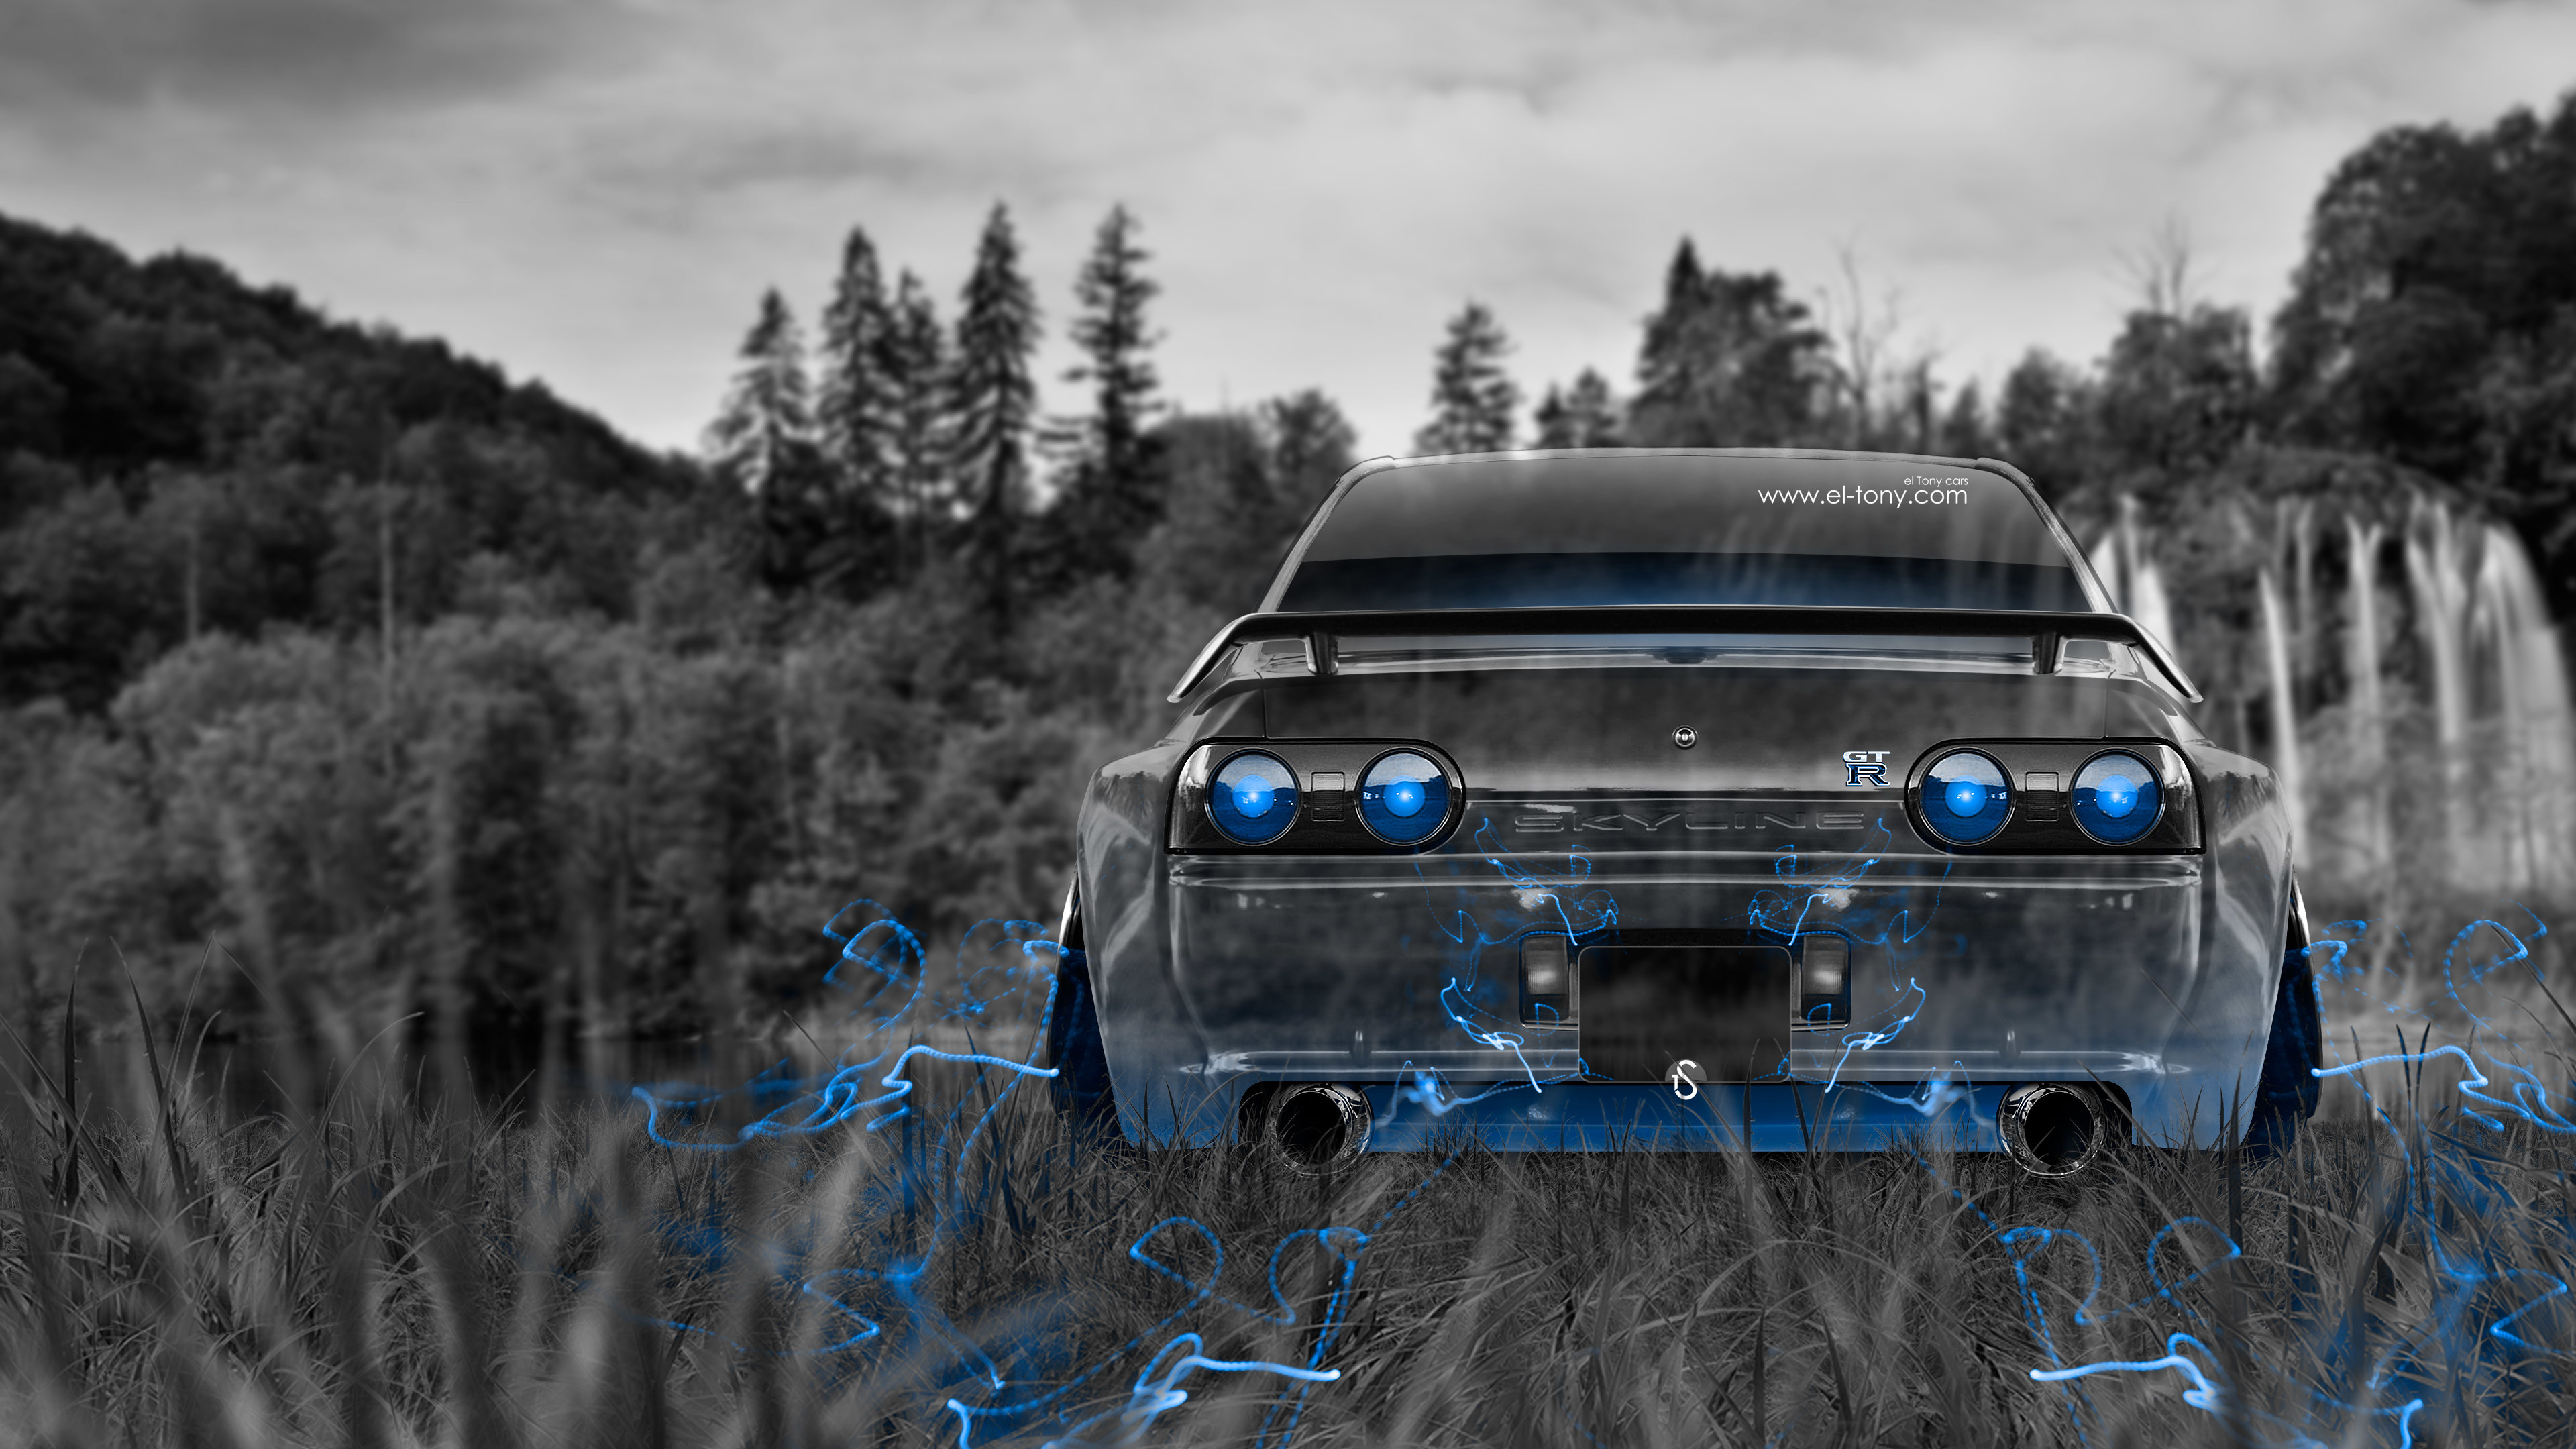 <b>Nissan Skyline</b> GTR R34 Anime Aerography Smoke Car 2014